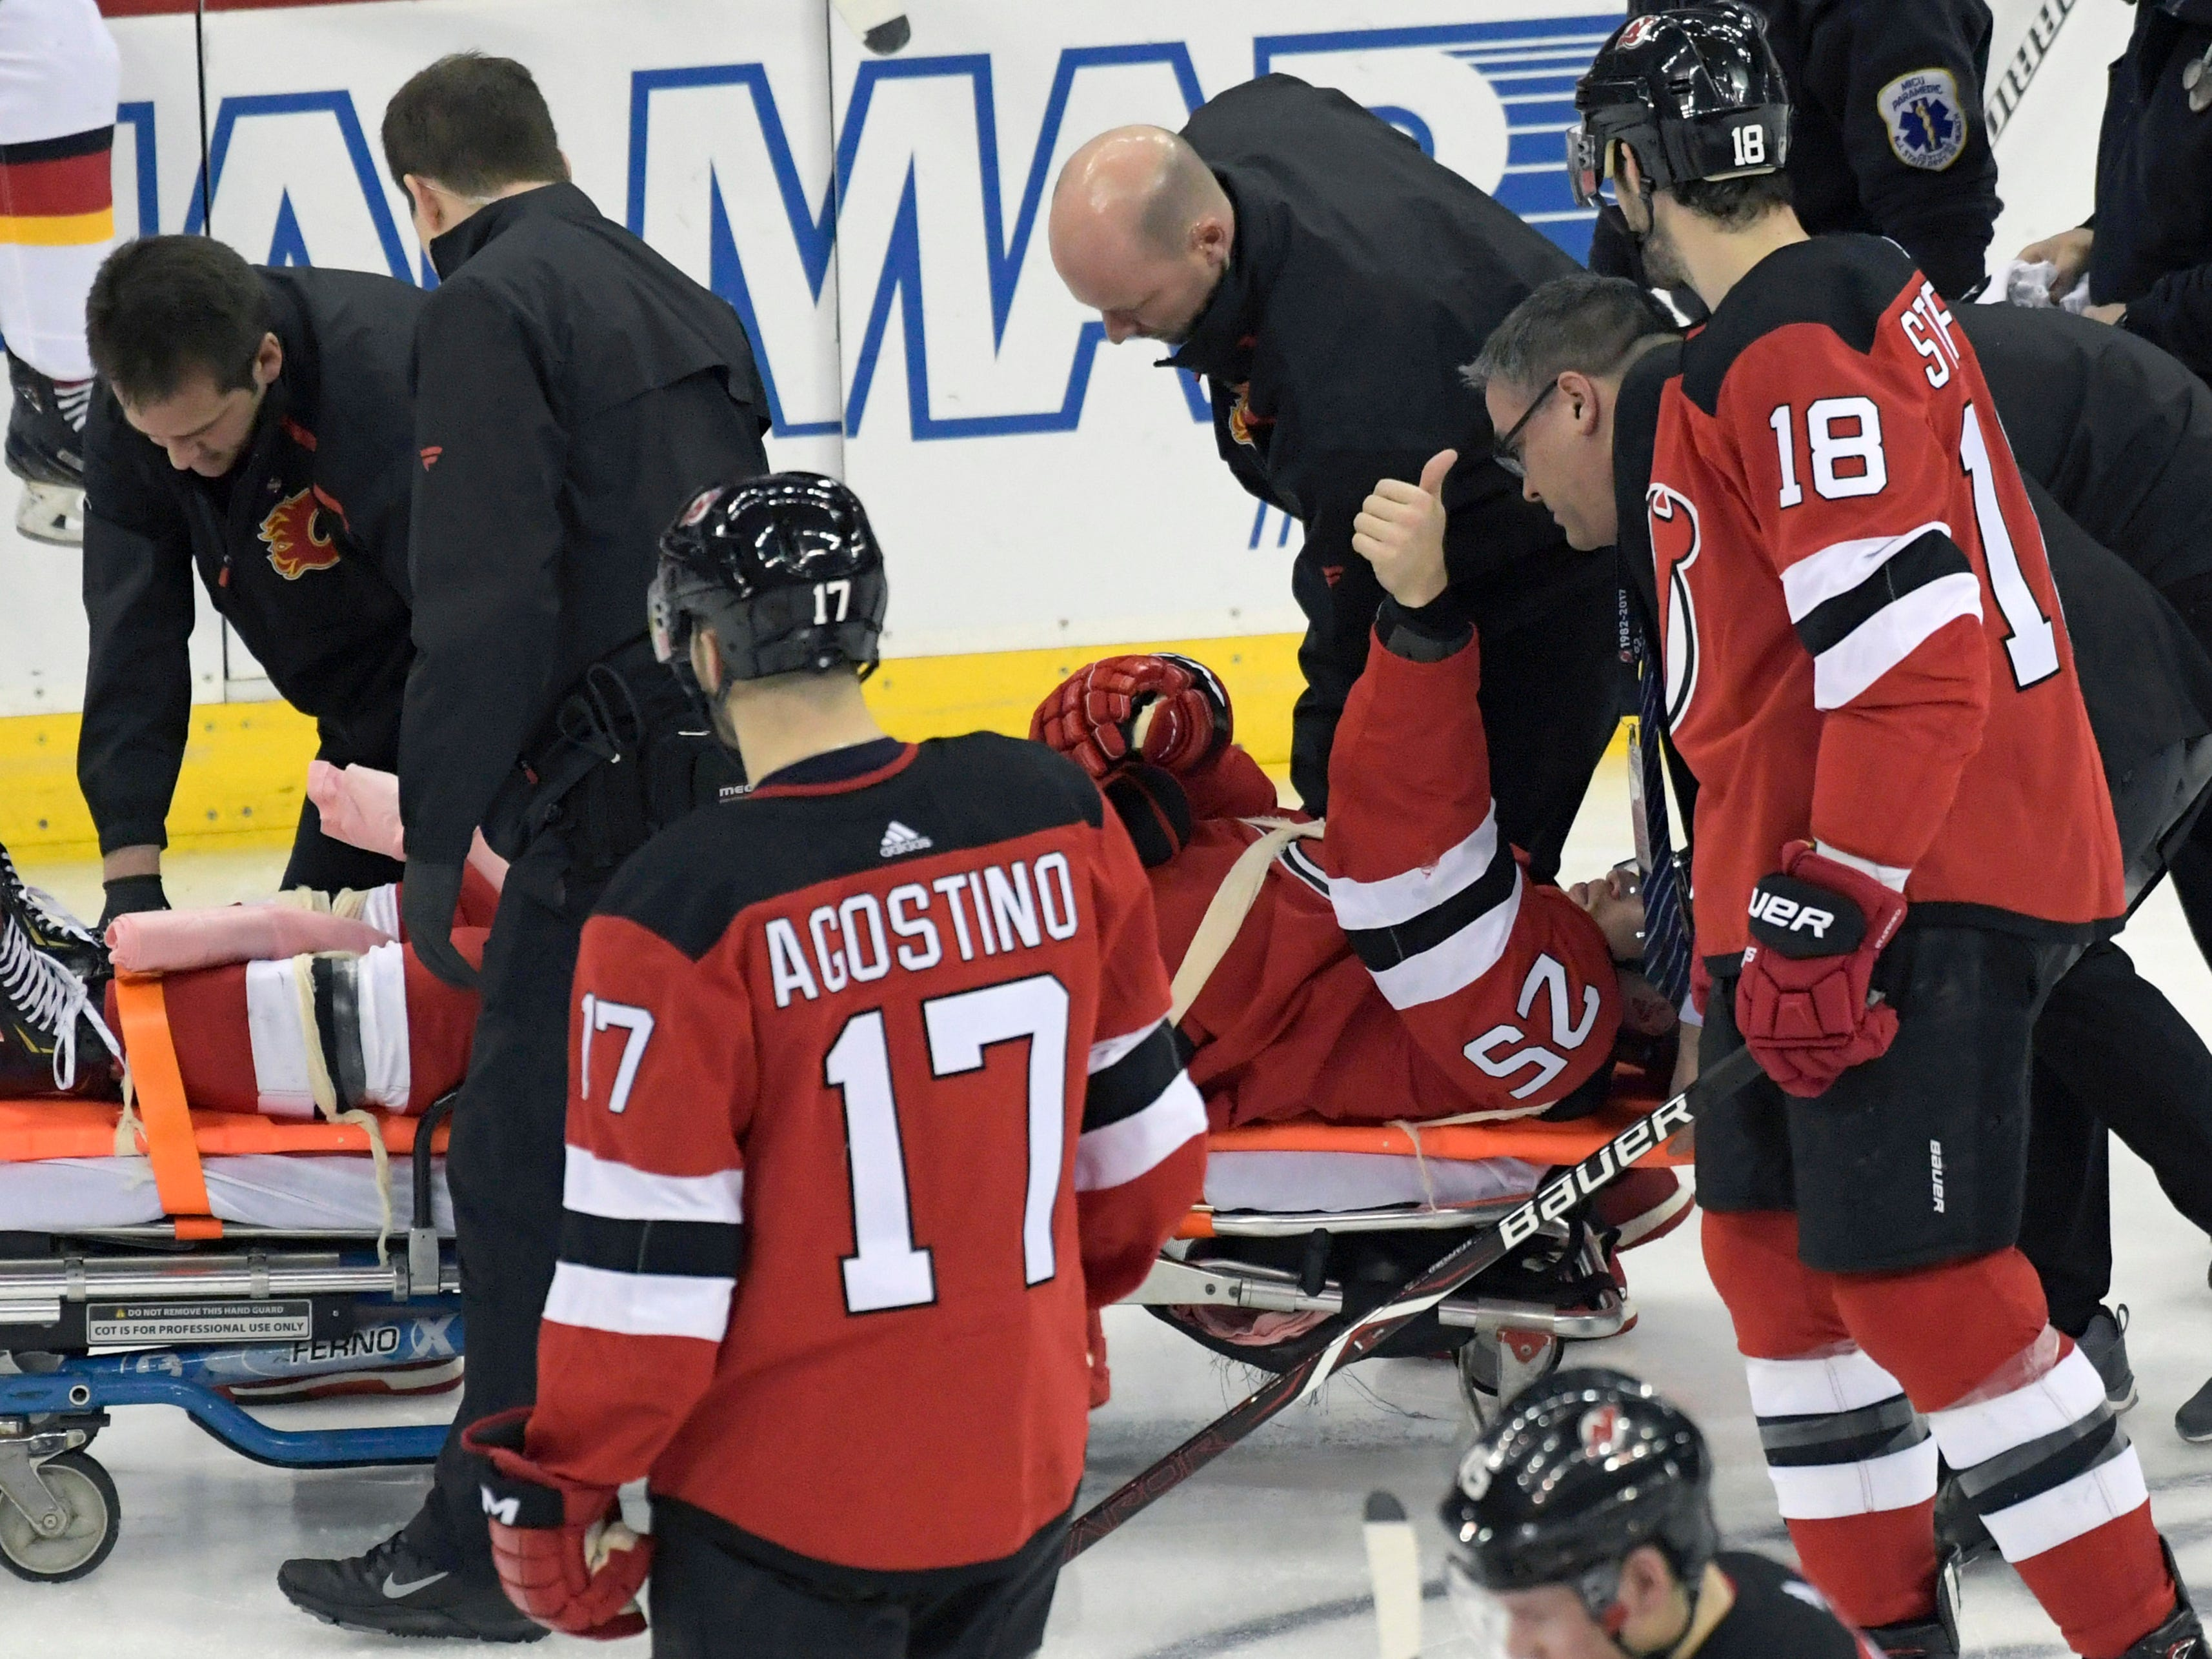 Feb. 27: New Jersey Devils defenseman Mirco Mueller gives a thumbs up as he is wheeled off the ice on a stretcher after crashing into the boards. The team said he had full feeling and movement in his extremities, was alert and taken to the hospital for tests.